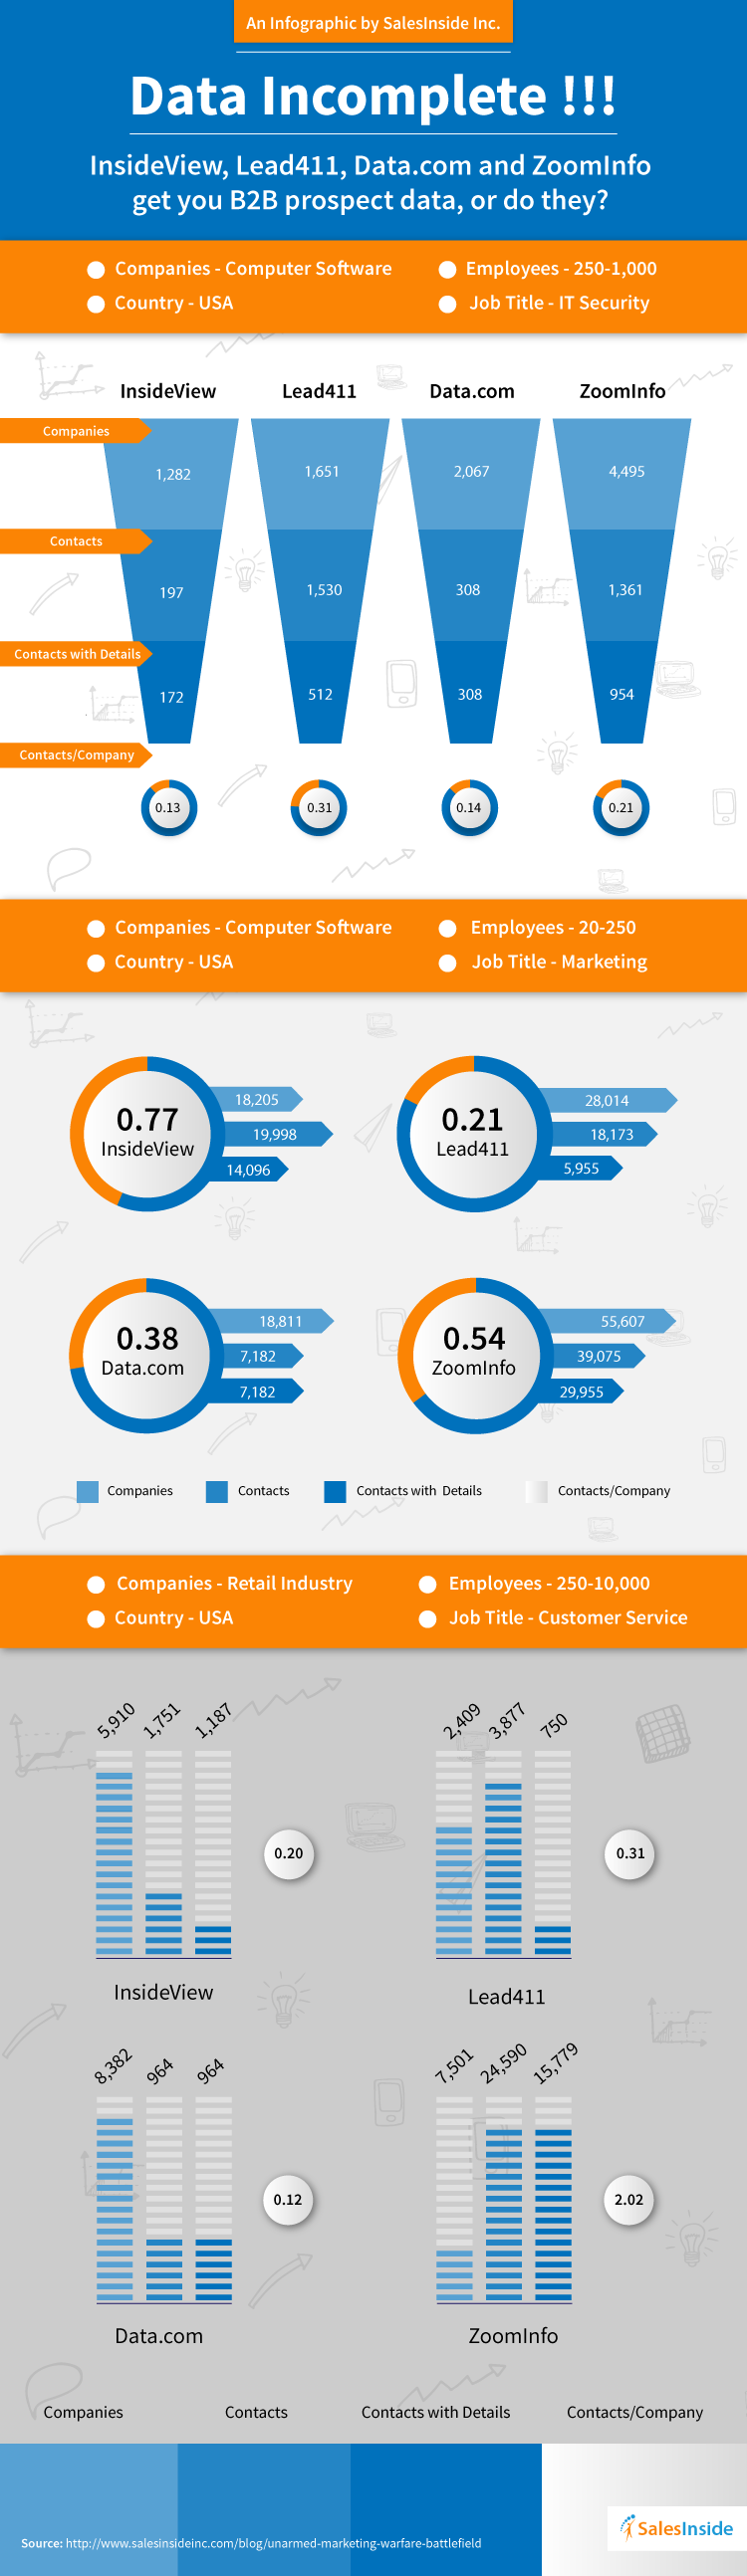 The Data Coverage Infographic